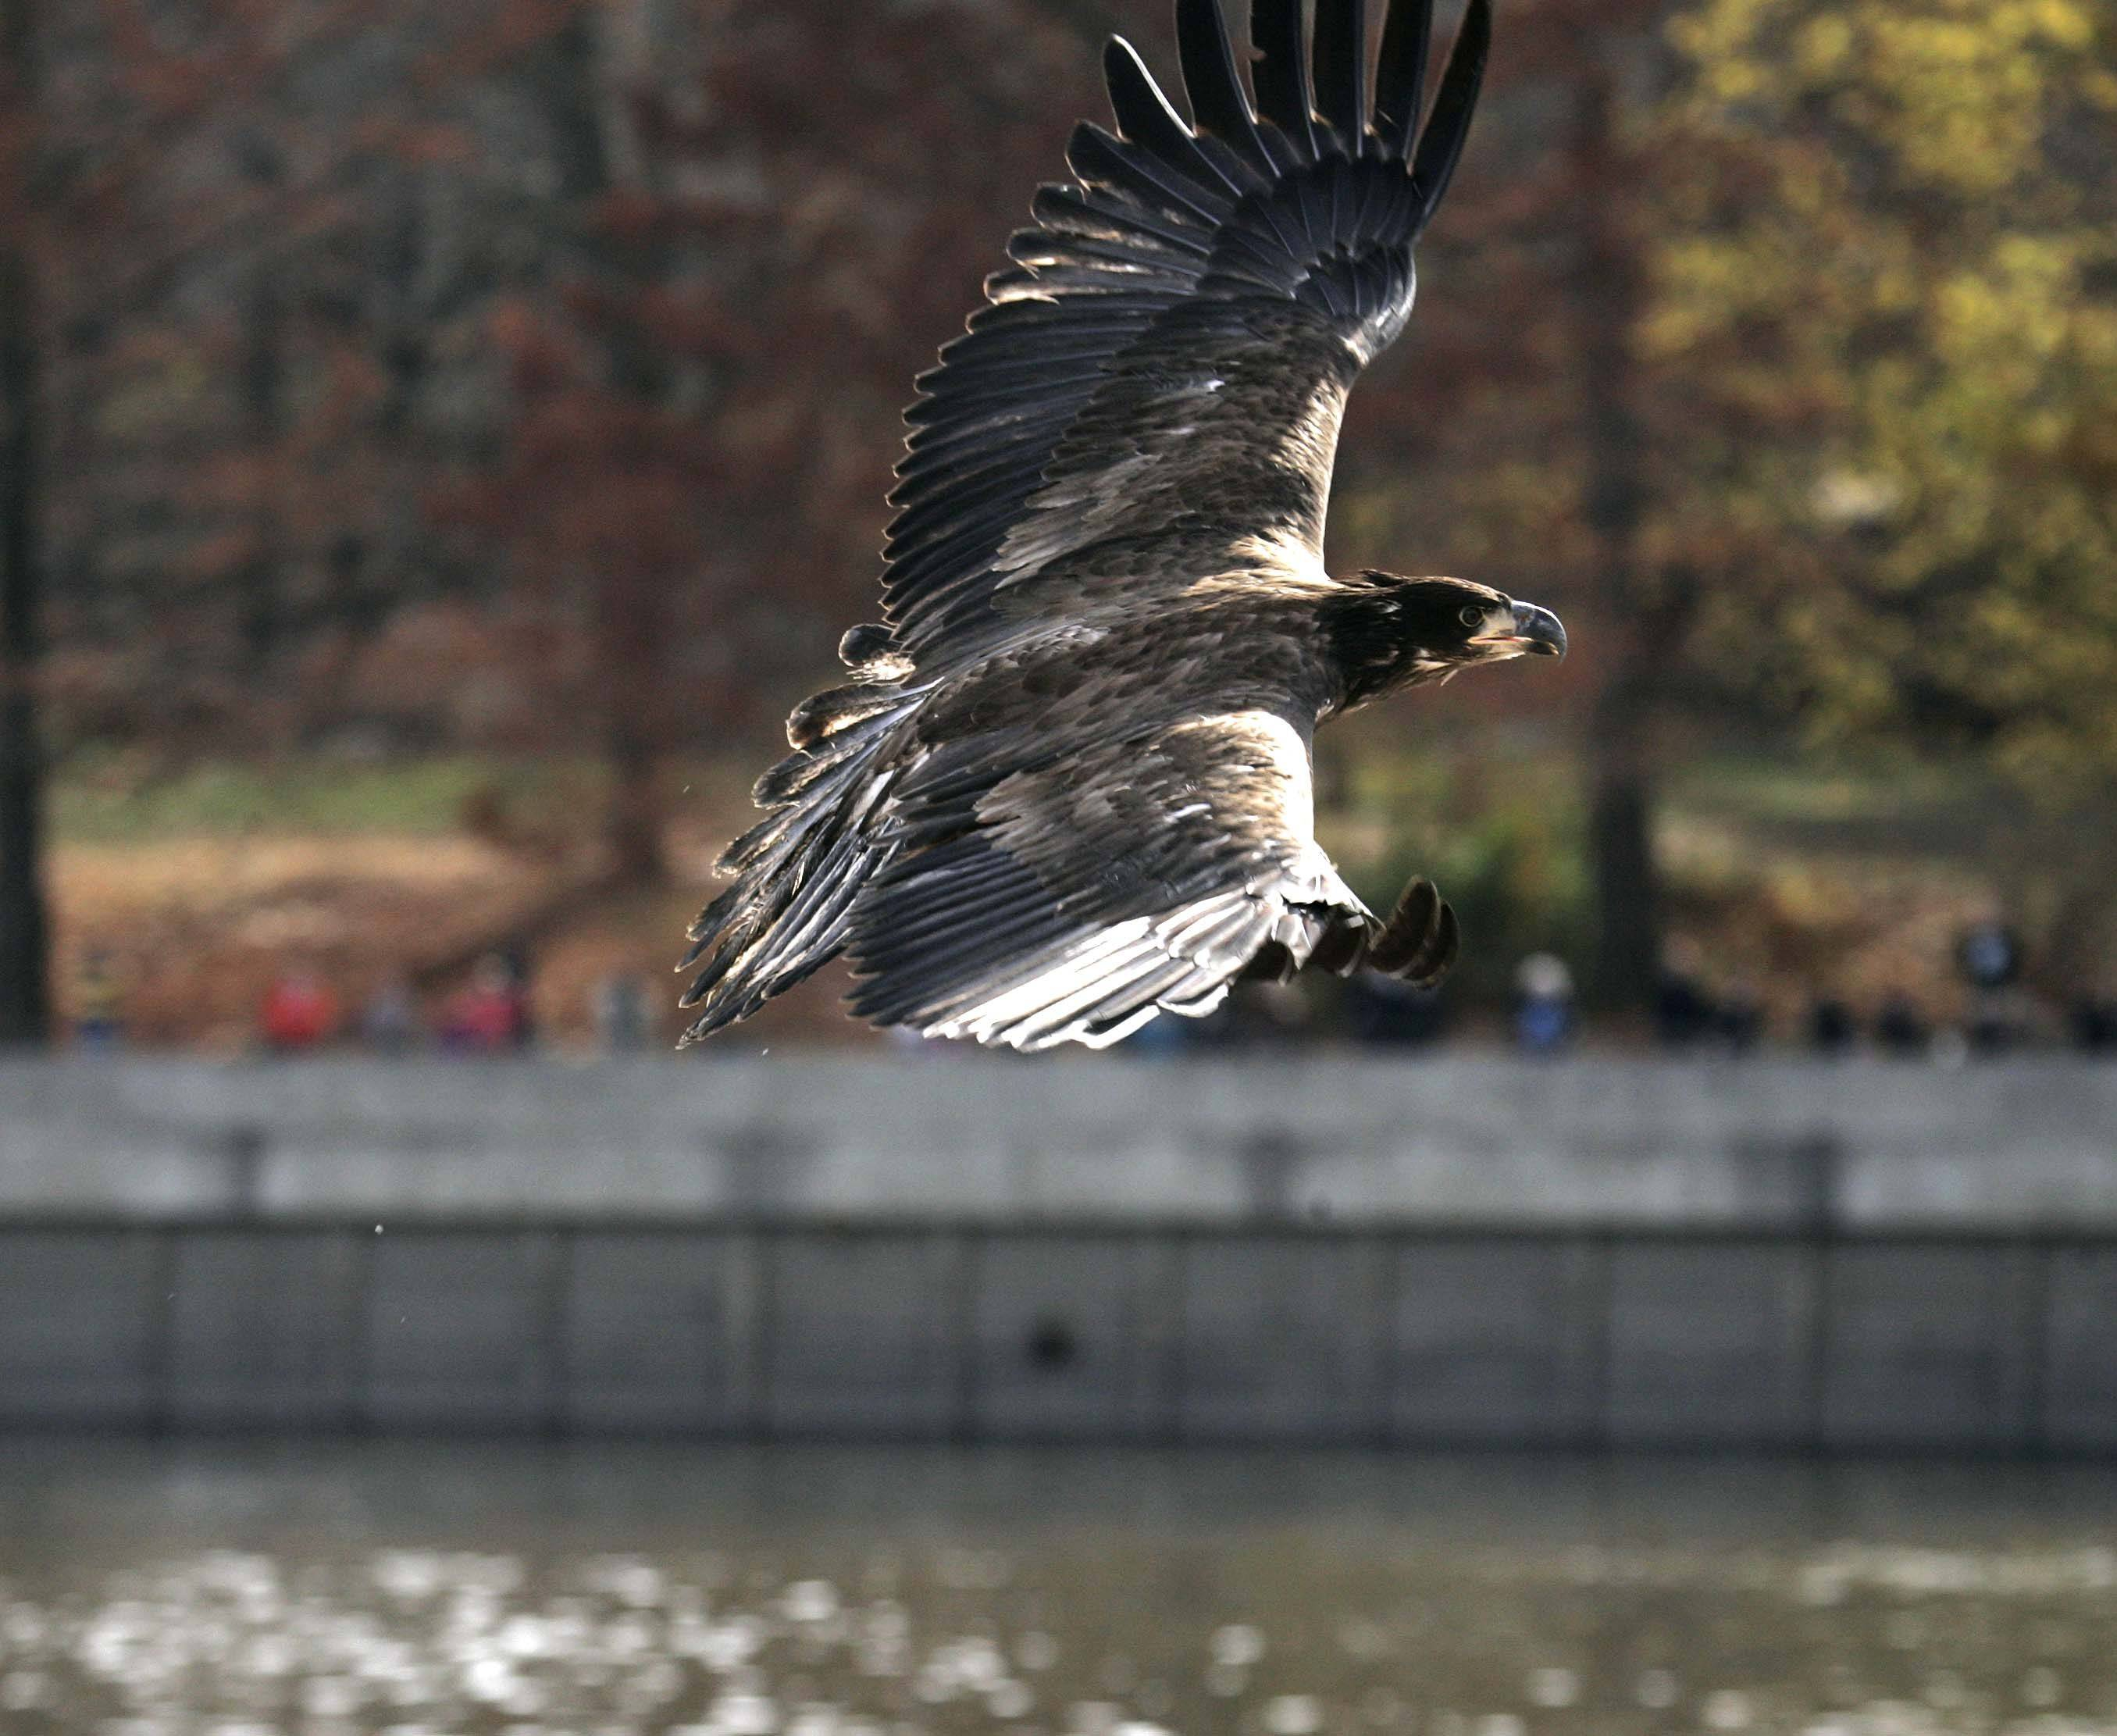 The second of two eagles released Saturday at Starved Rock State Park Utica takes flight.